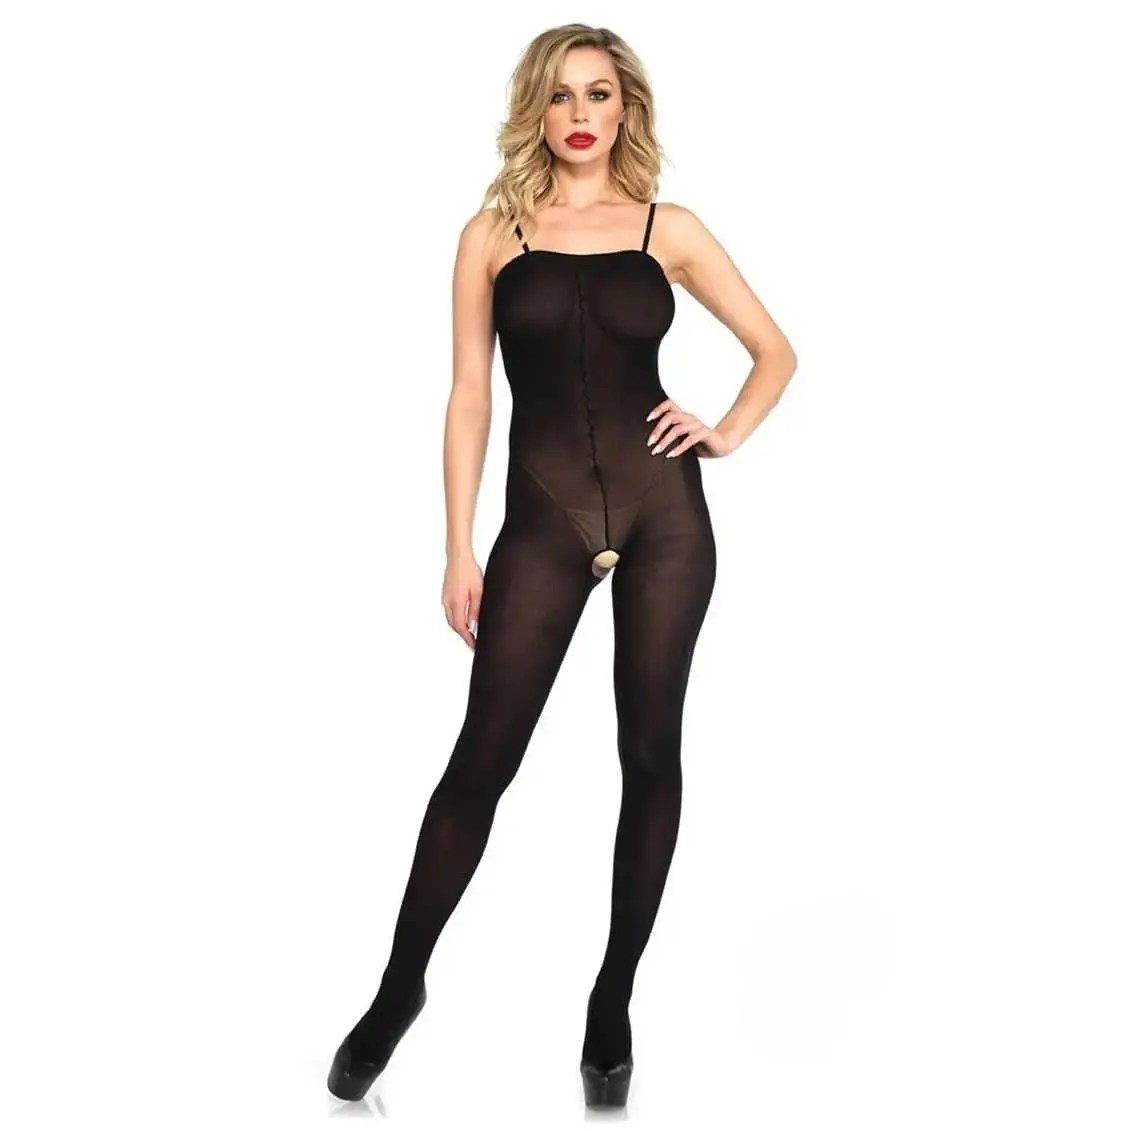 Sweet Emotions Opaque Bodystocking by Leg Avenue